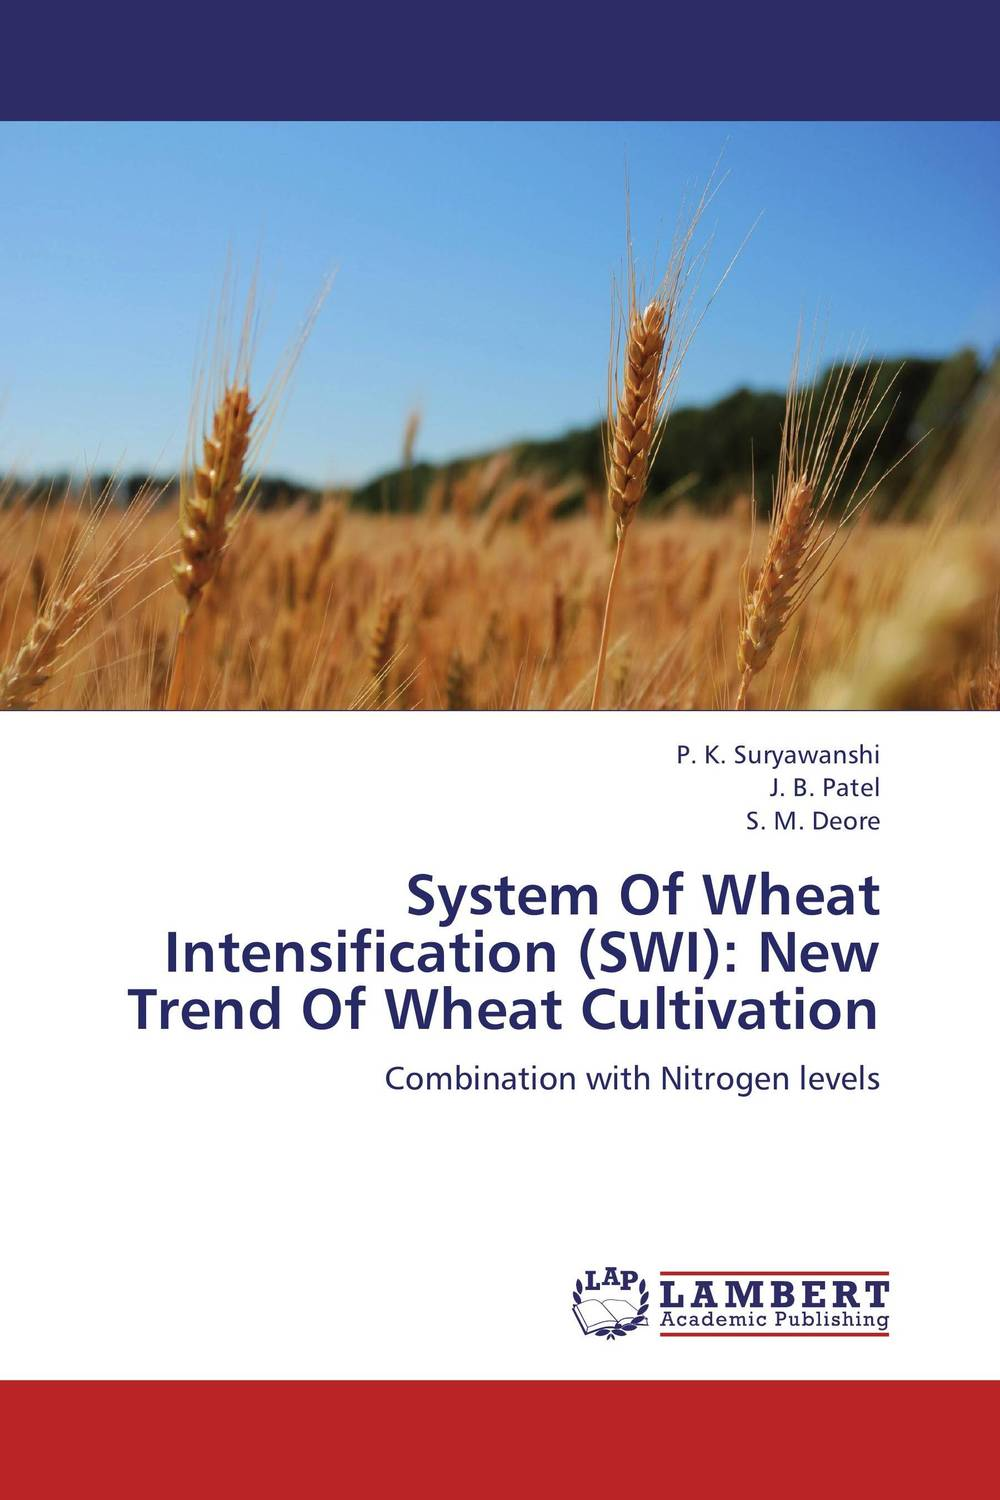 System Of Wheat Intensification (SWI): New Trend Of Wheat Cultivation natural enemy fauna in rice wheat system of india